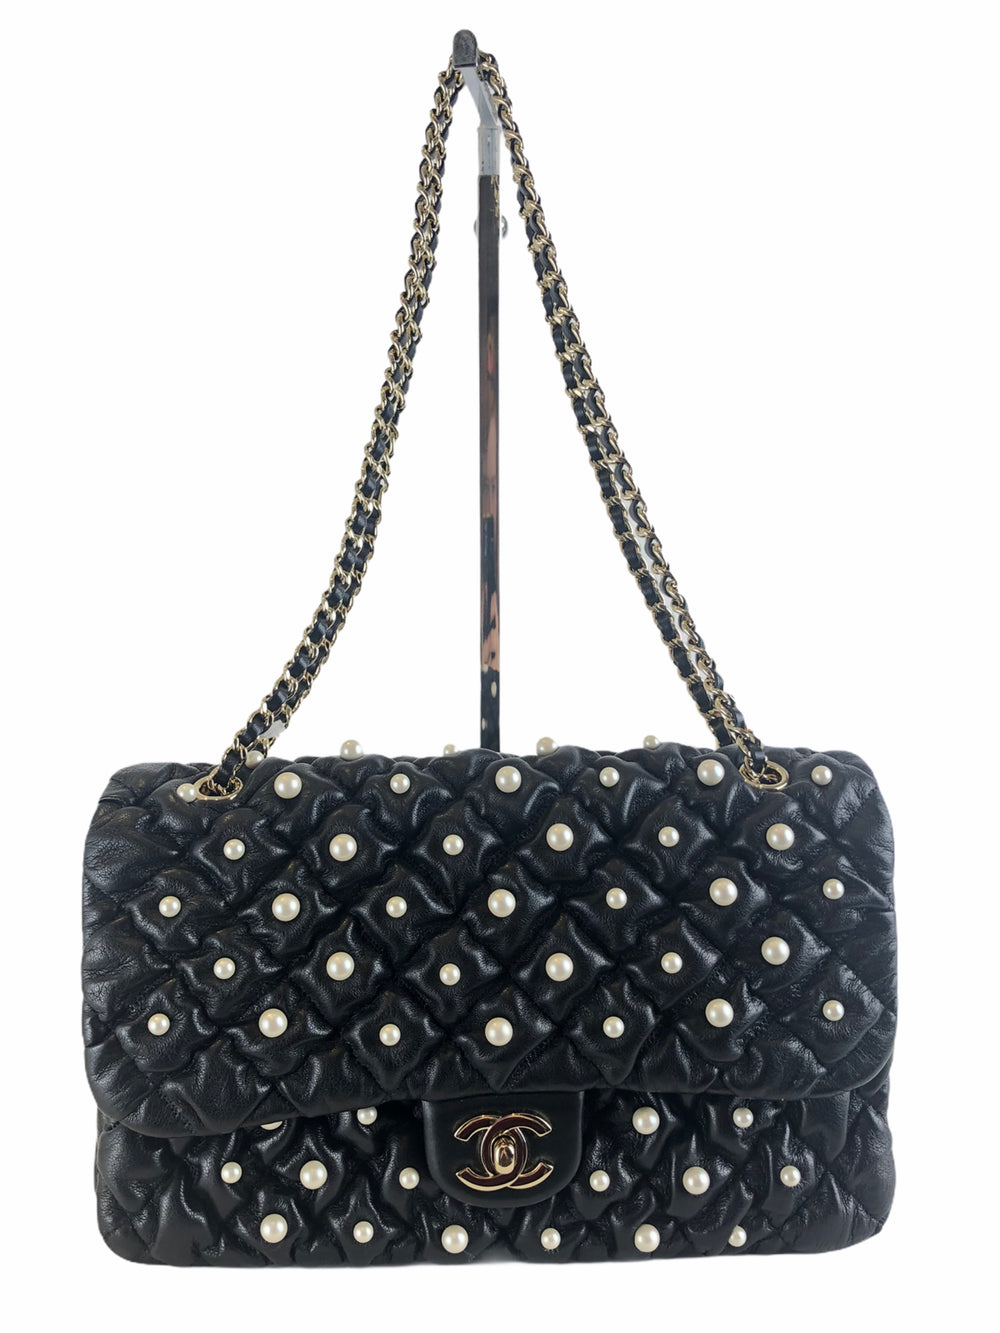 Chanel Black Lambskin Crossbody with Pearl Detailing